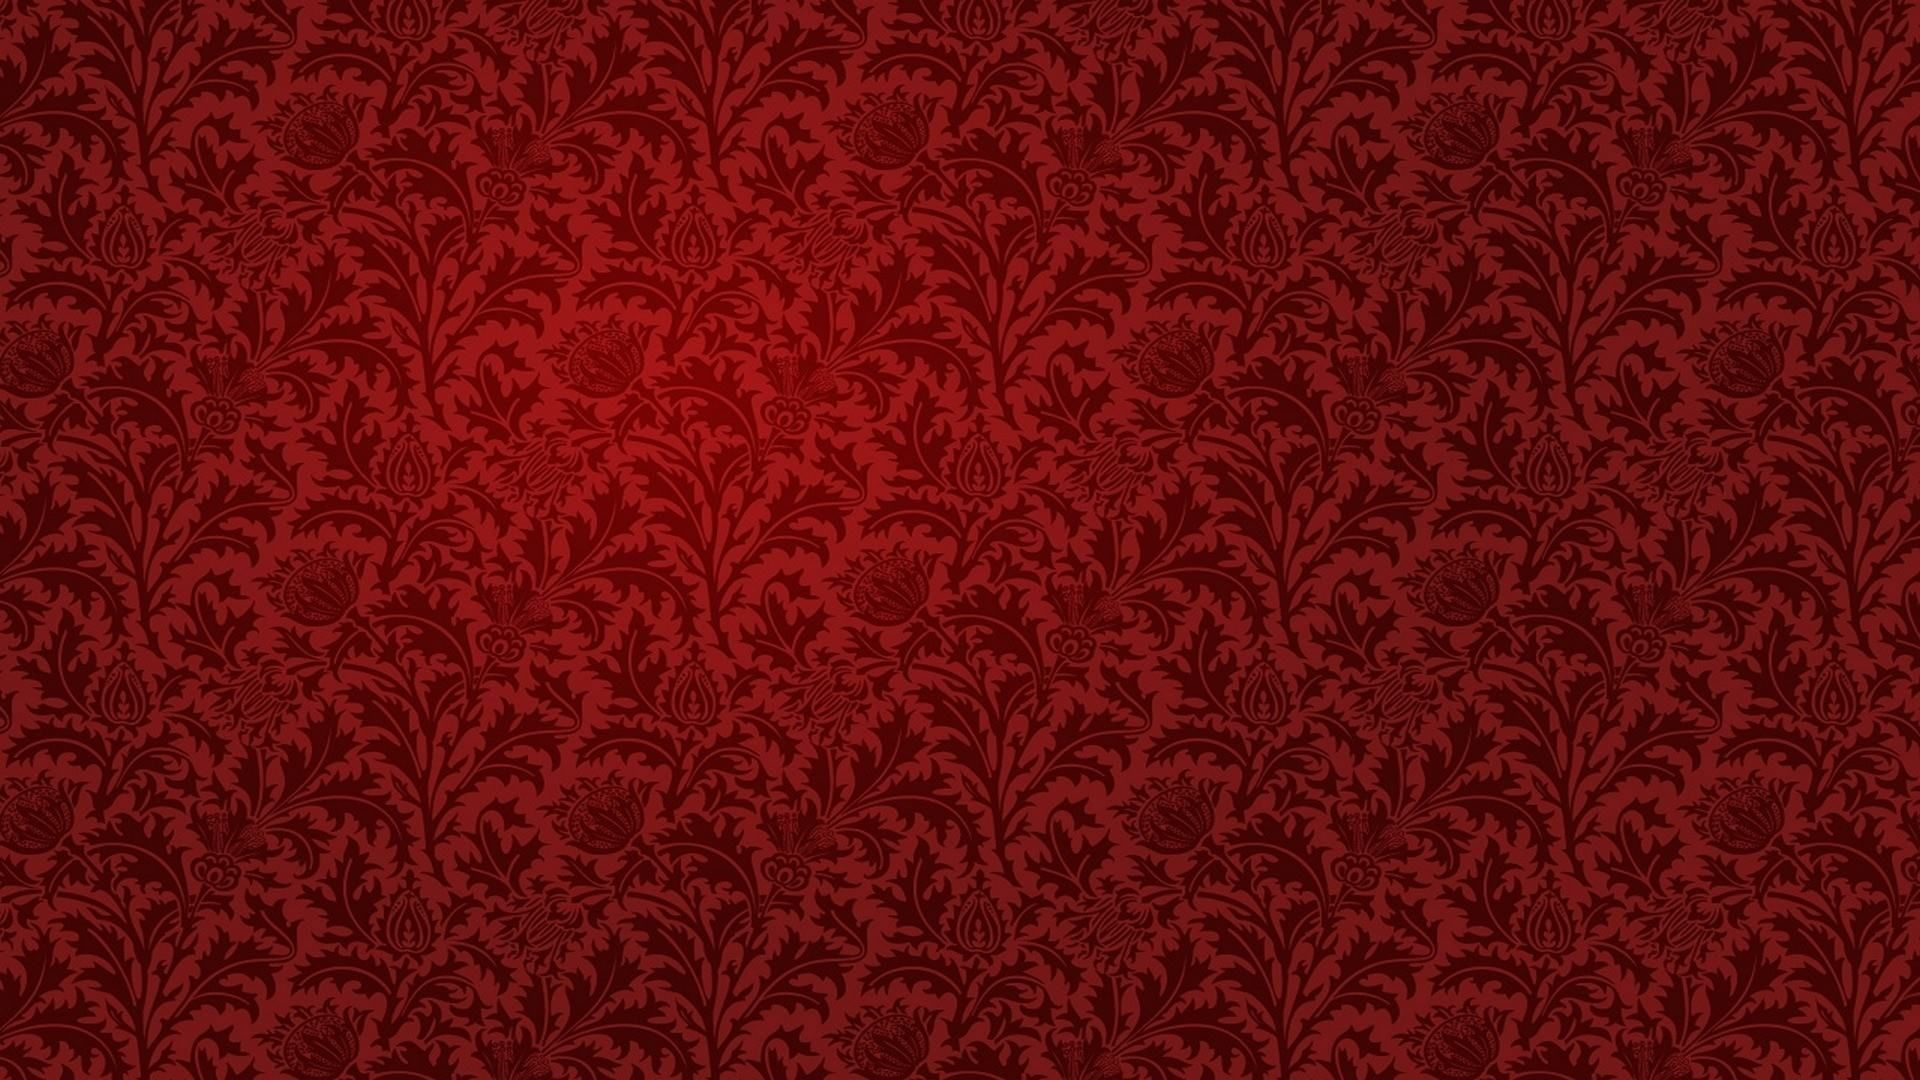 Red Texture Wallpapers Hd Resolution For Desktop Wallpaper x